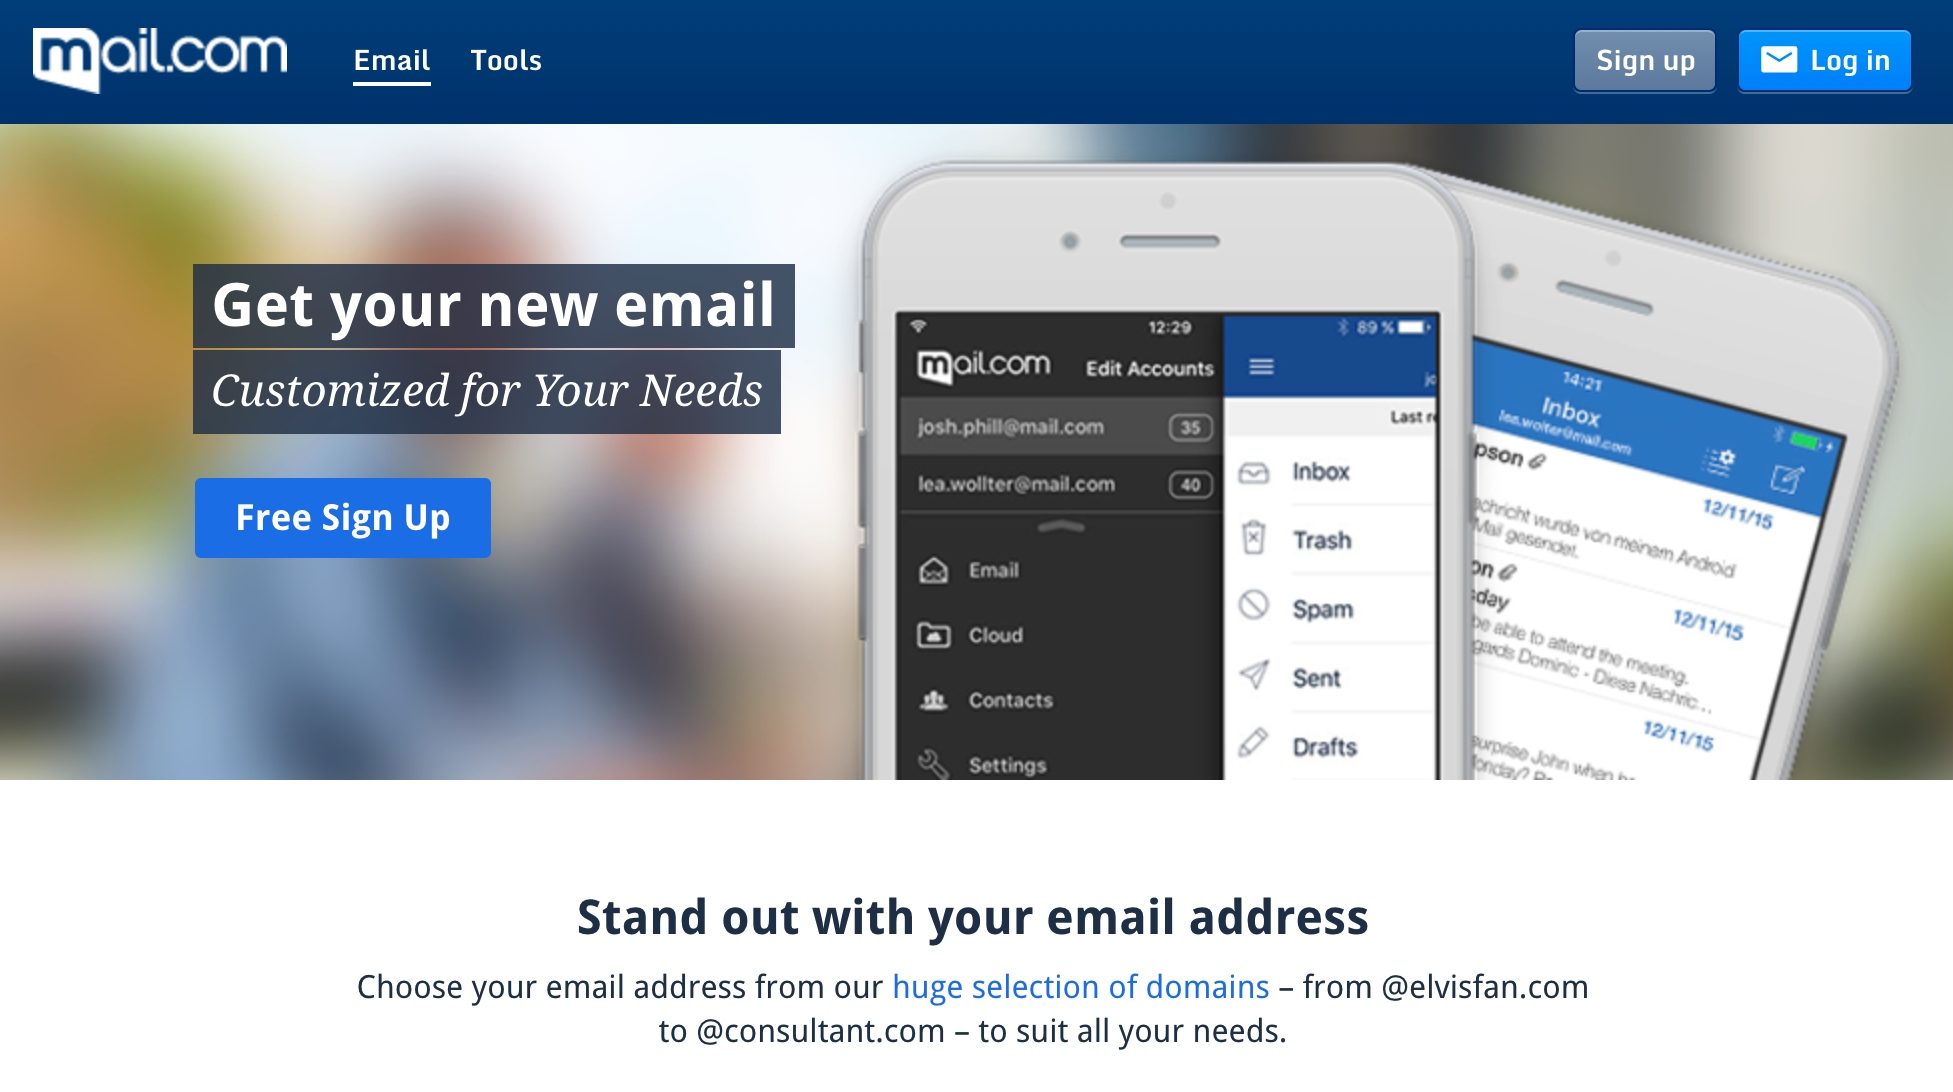 Mail.com is one of the best ways to get a free email domain